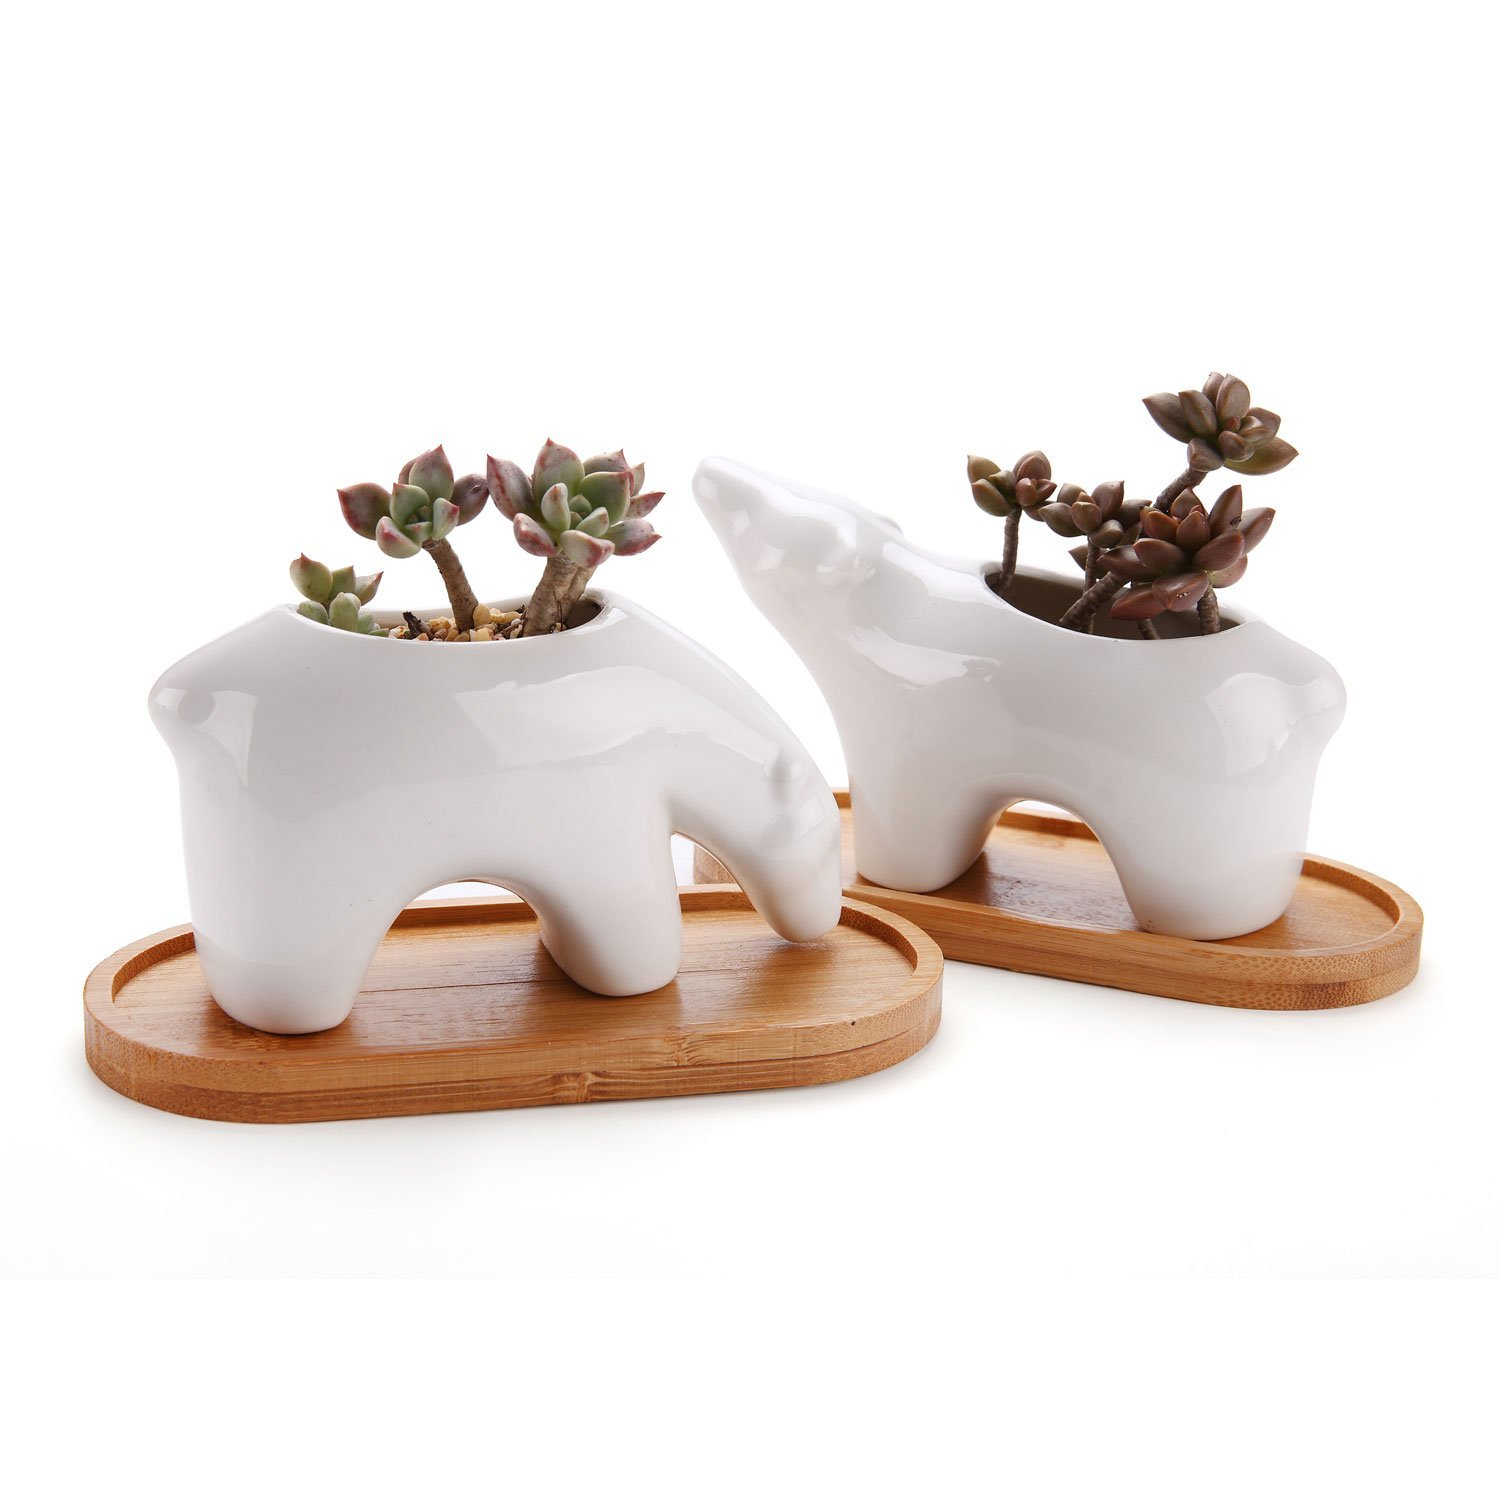 T4U Succulent Plant Pot Cactus Ceramic Planter with Bamboo Tray Pack of 2 - Polar Bear, Small Herb Container White Animal Window Box Decorative Ornament Office Desktop Wedding Birthday